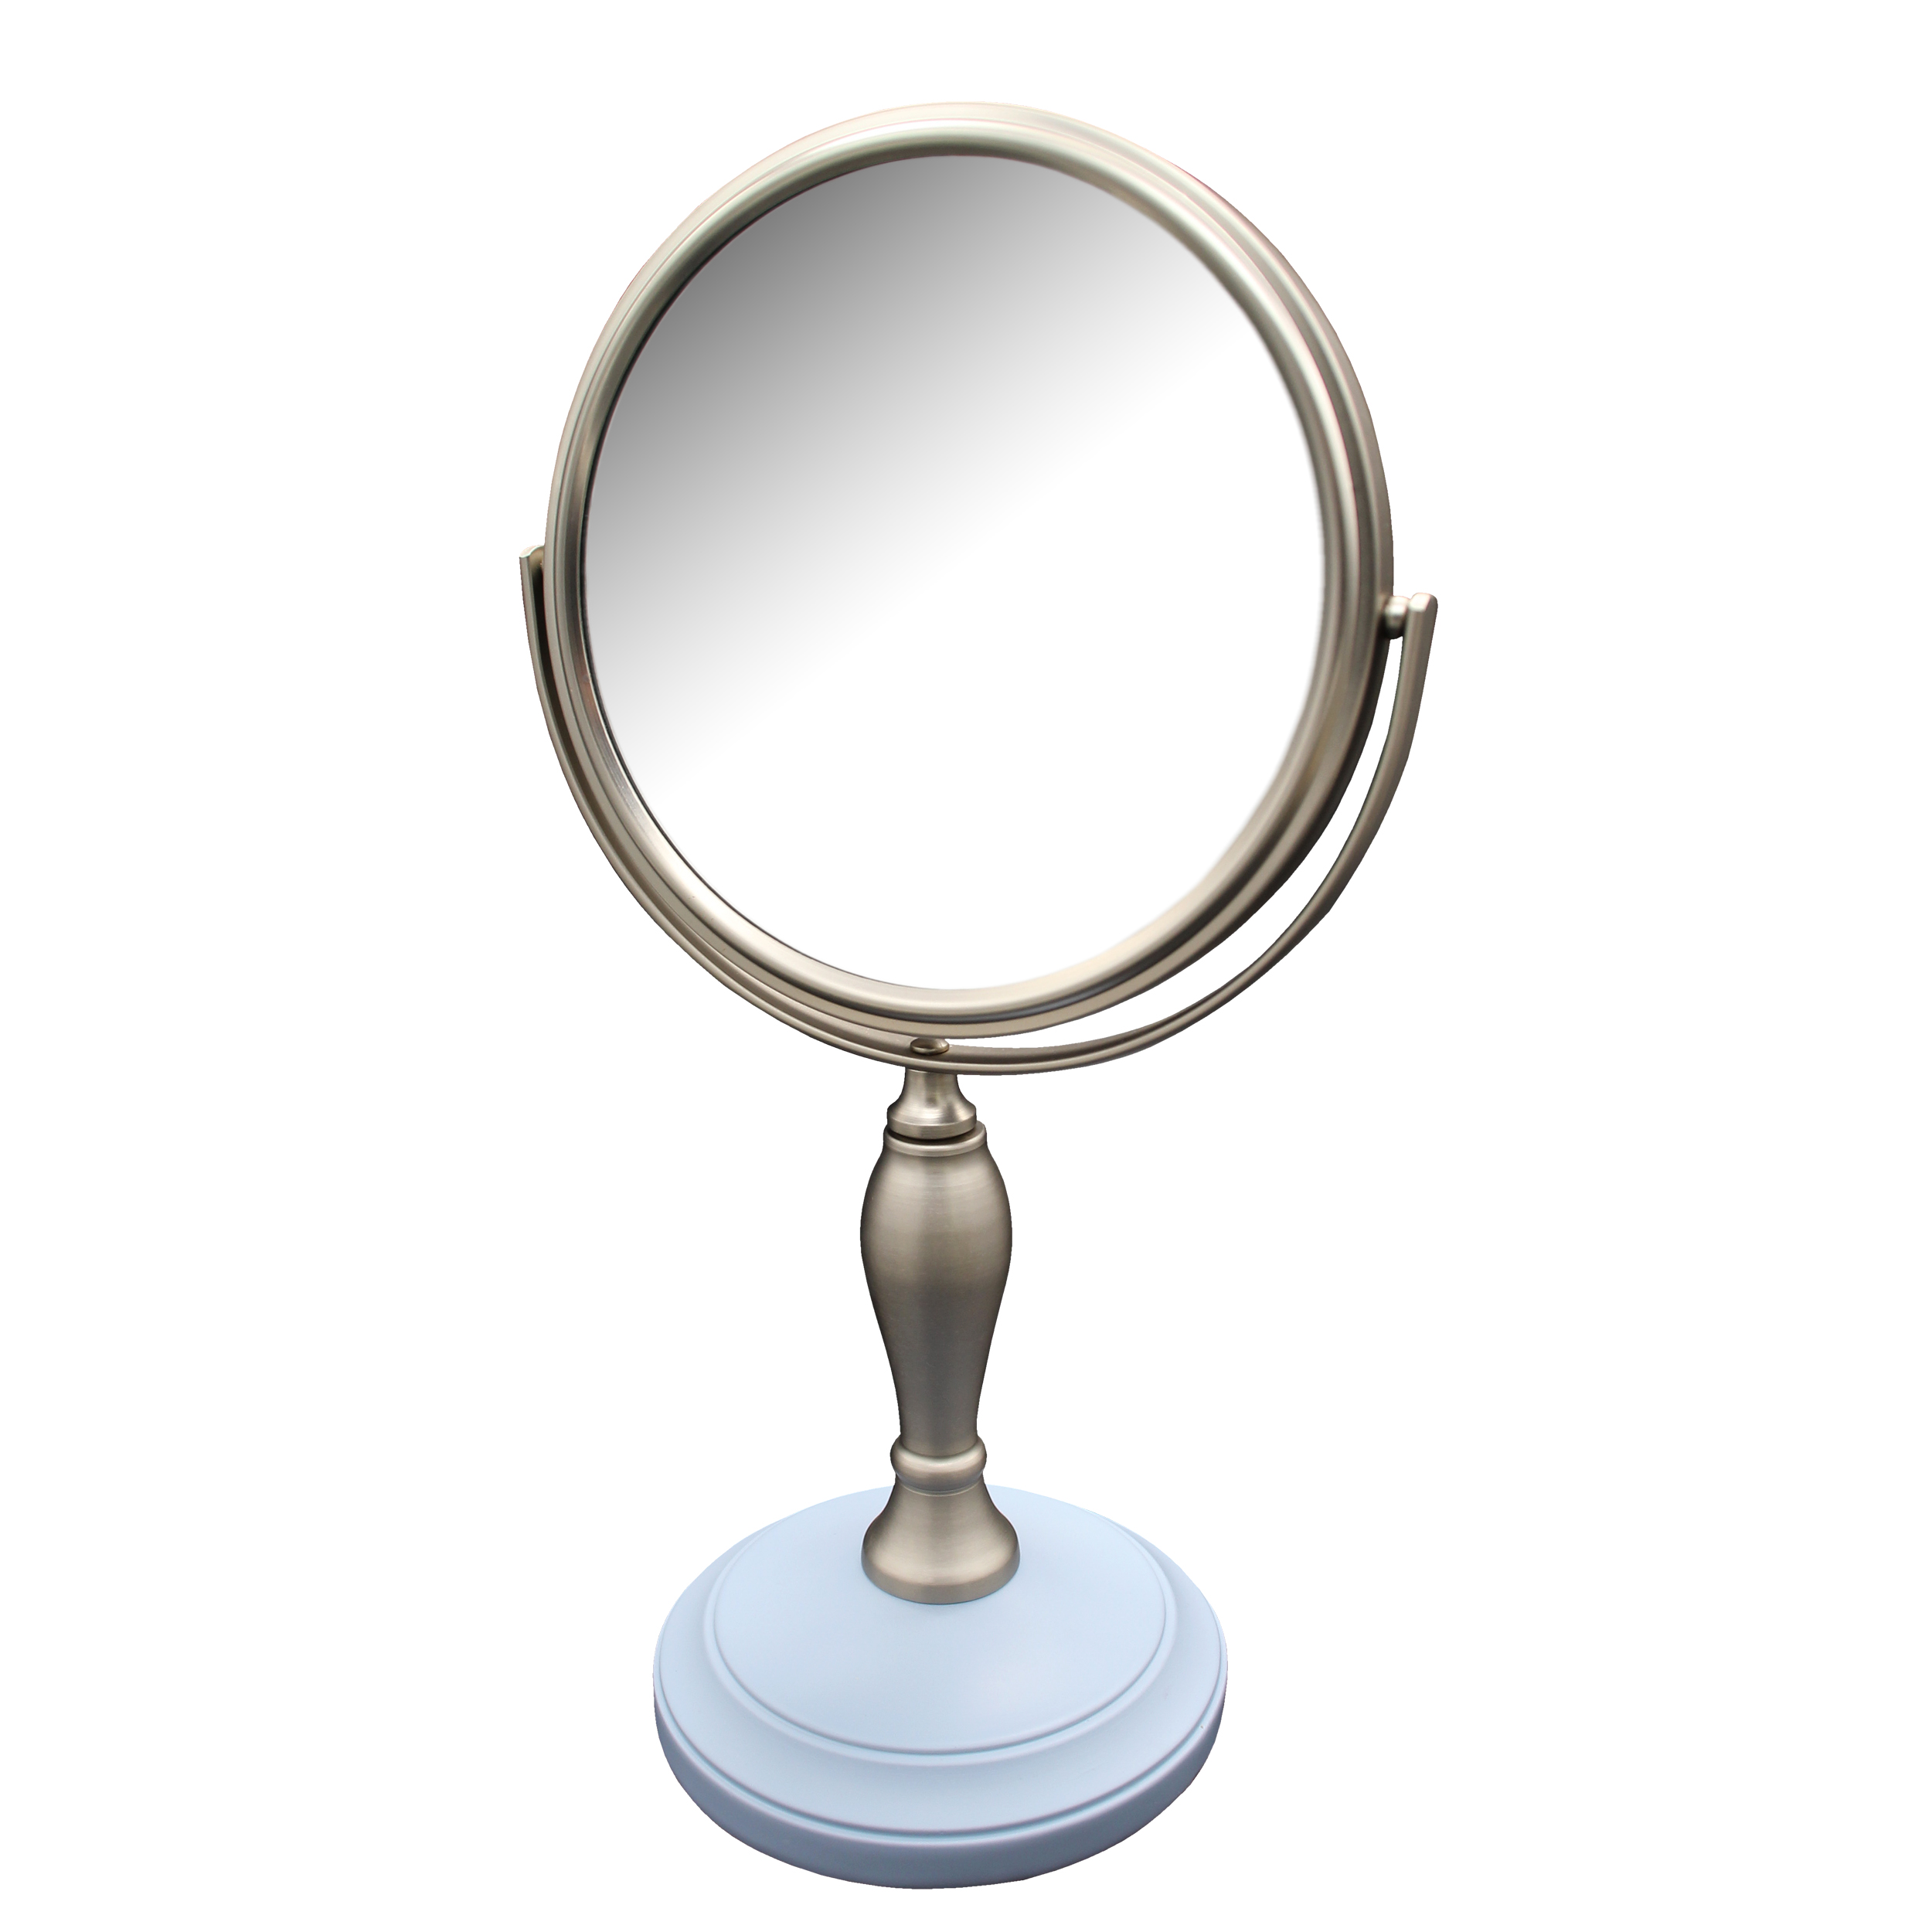 Elegant Home Fashions Fair Lady Freestanding Bath Magnifying Makeup Mirror with Frost Blue Base and Mew Pedestal